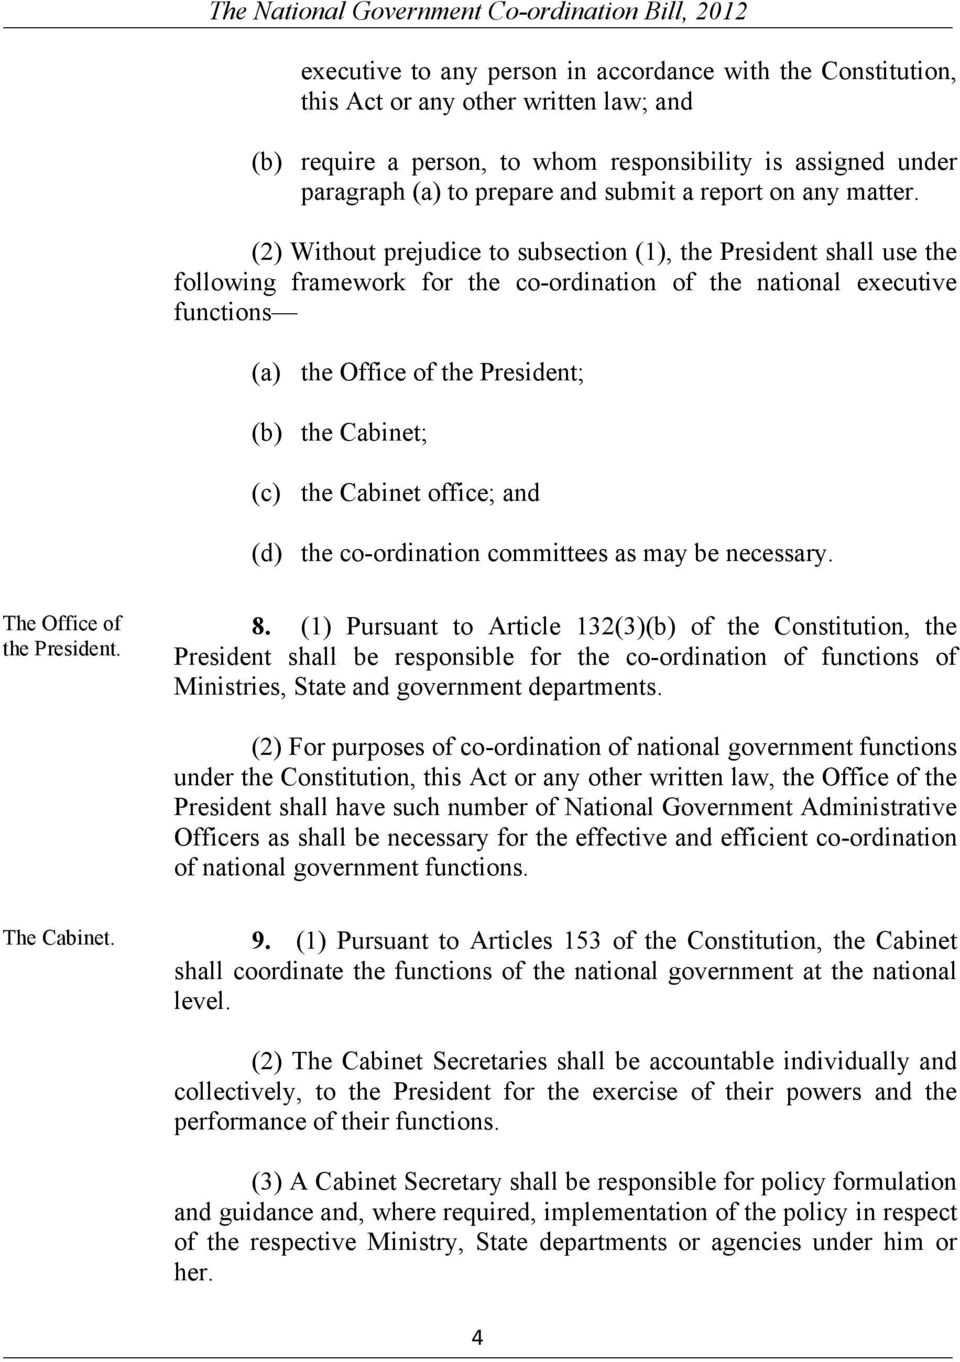 (2) Without prejudice to subsection (1), the President shall use the following framework for the co-ordination of the national executive functions (a) the Office of the President; (b) the Cabinet;